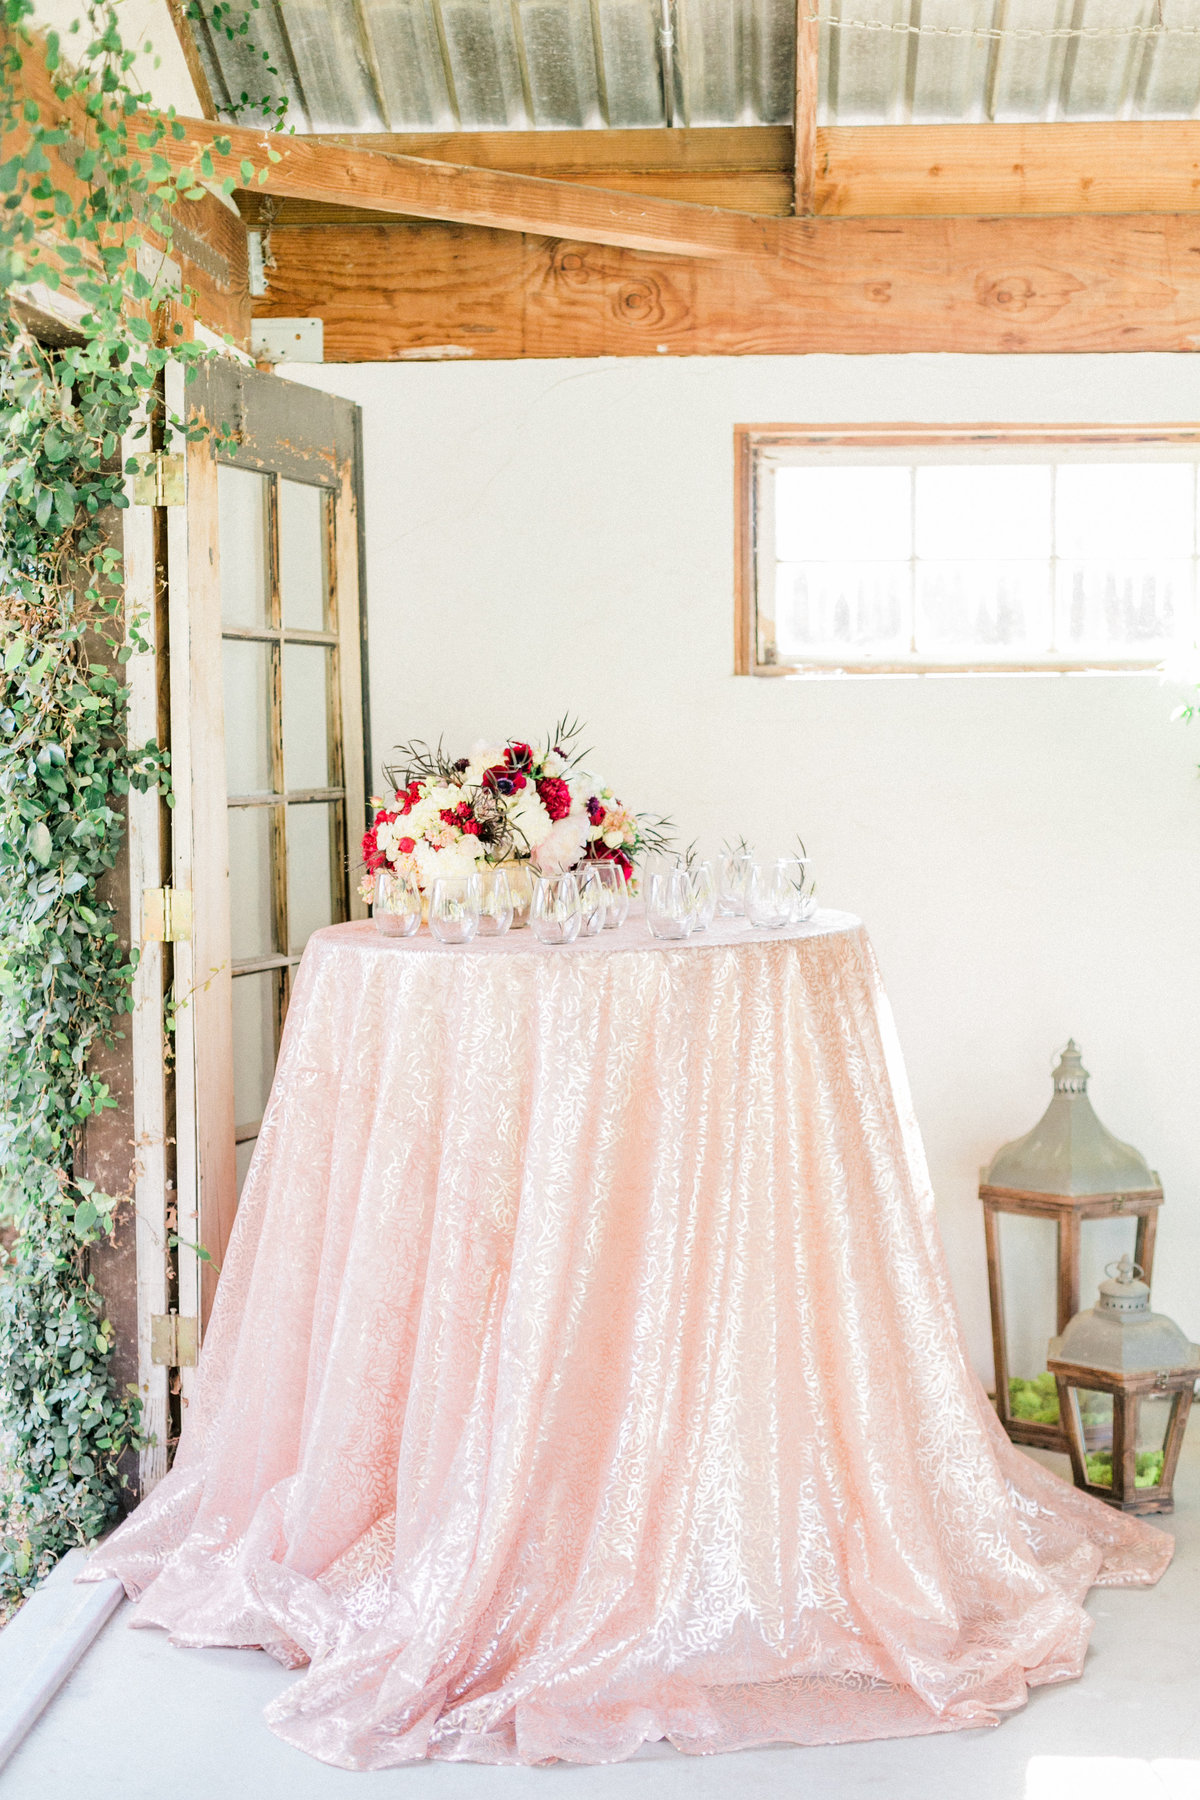 Napa Valley Linens Blush Sequined Linens